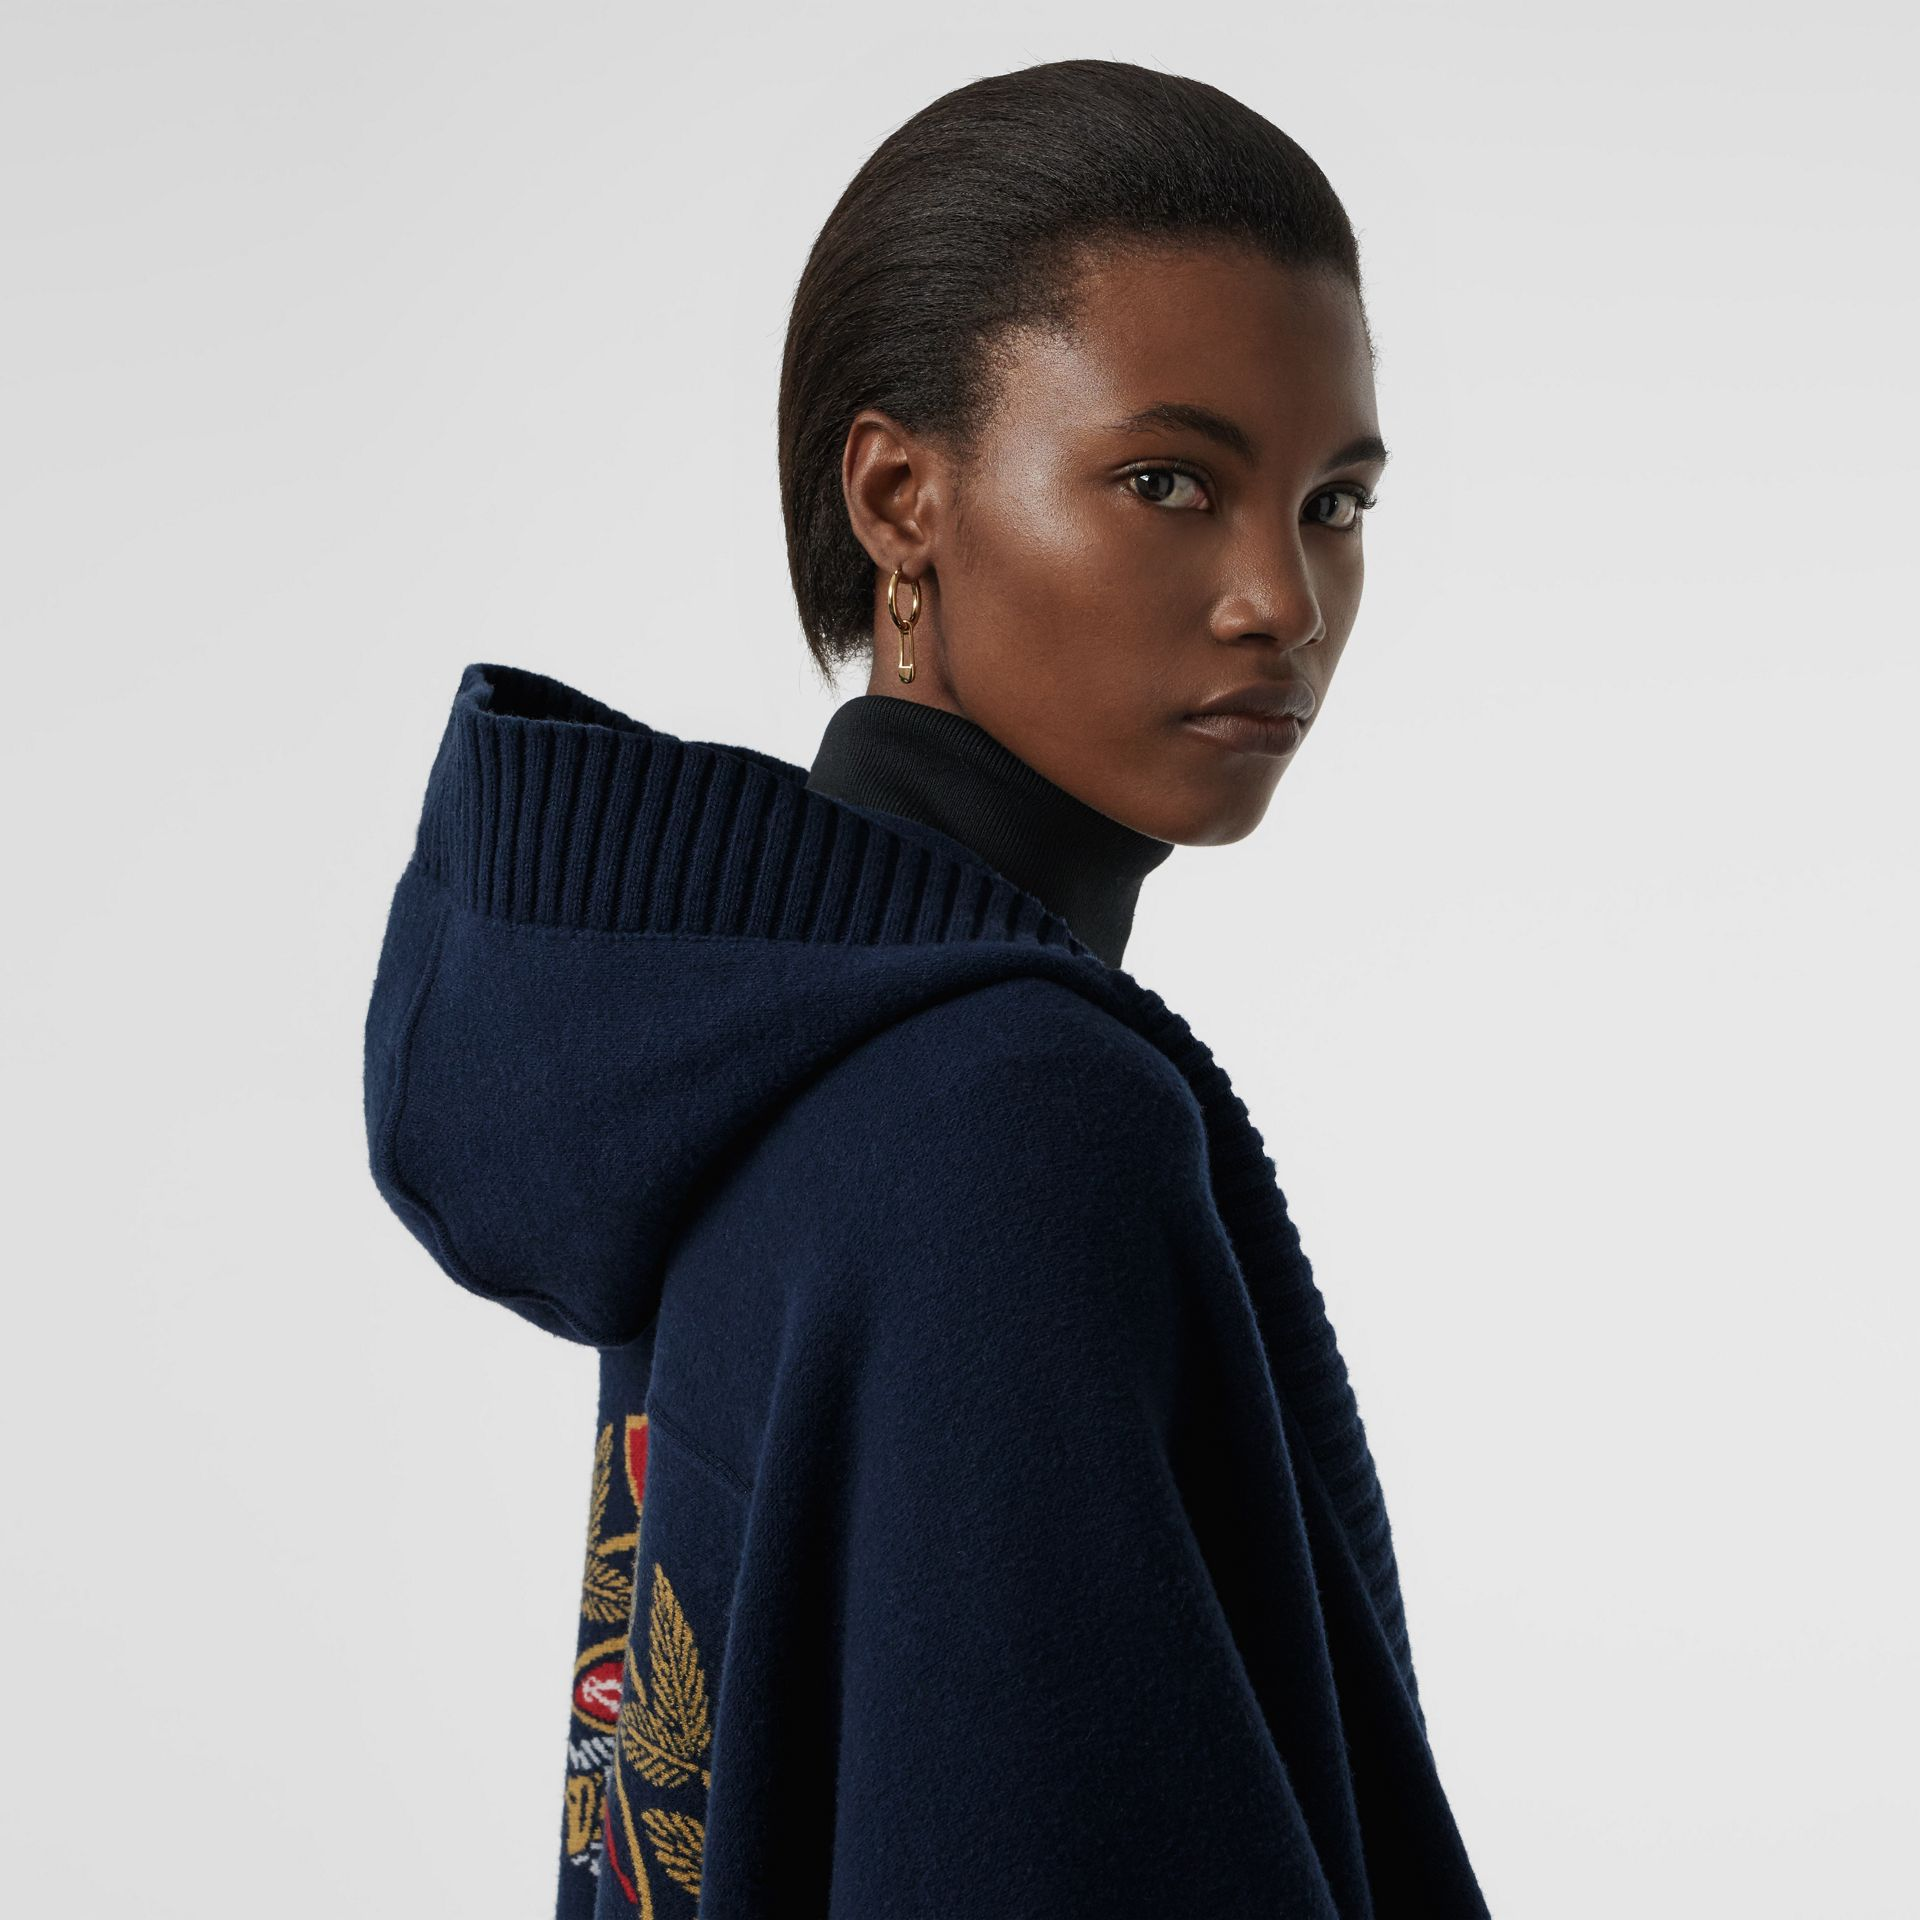 Crest Jacquard Wool Blend Hooded Cape in Navy - Women | Burberry - gallery image 1